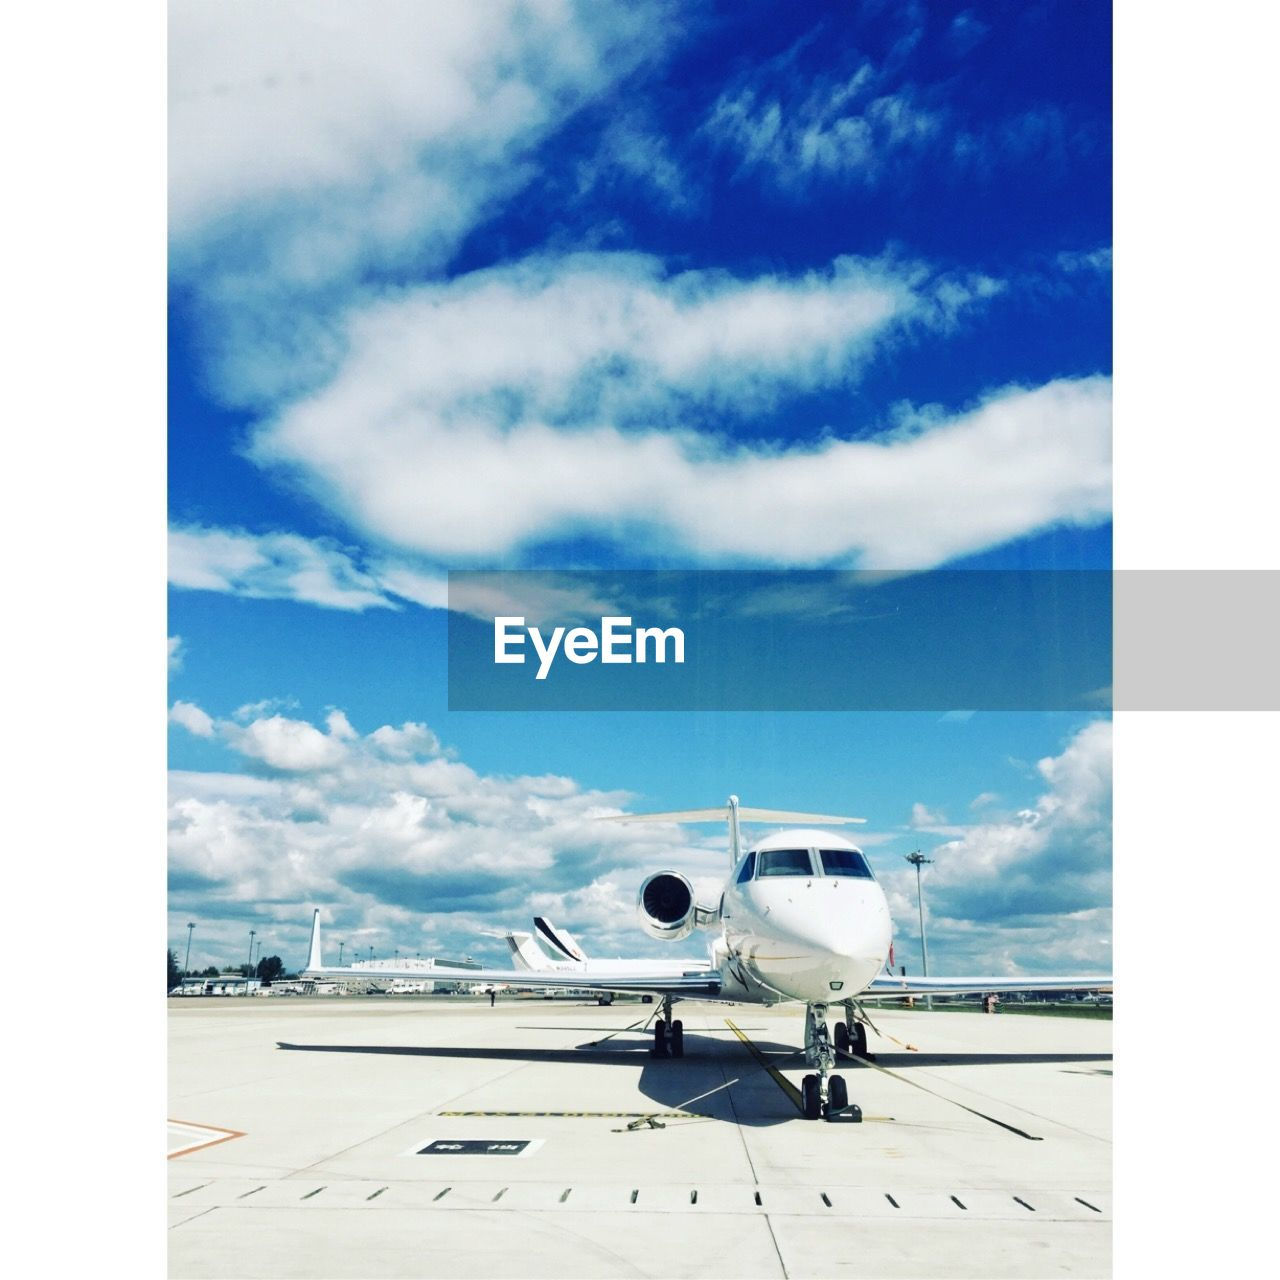 sky, cloud - sky, airport, transportation, mode of transportation, air vehicle, airplane, nature, travel, day, airport runway, blue, no people, outdoors, public transportation, runway, sunlight, commercial airplane, journey, aerospace industry